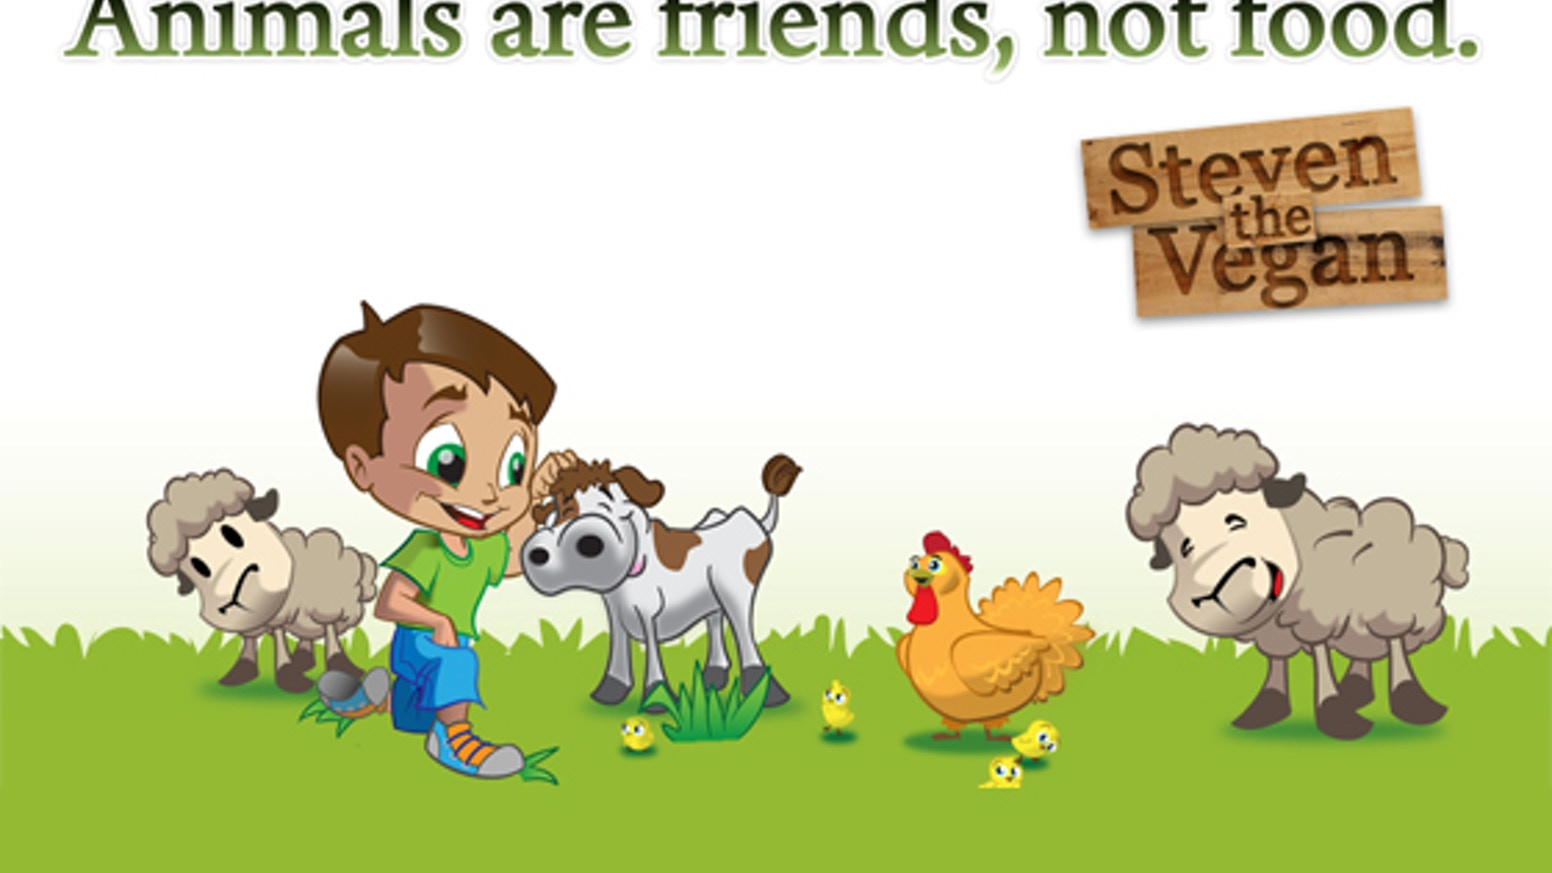 Creation of a children's book for vegan children to help explain to their friends their lifestyle choice.